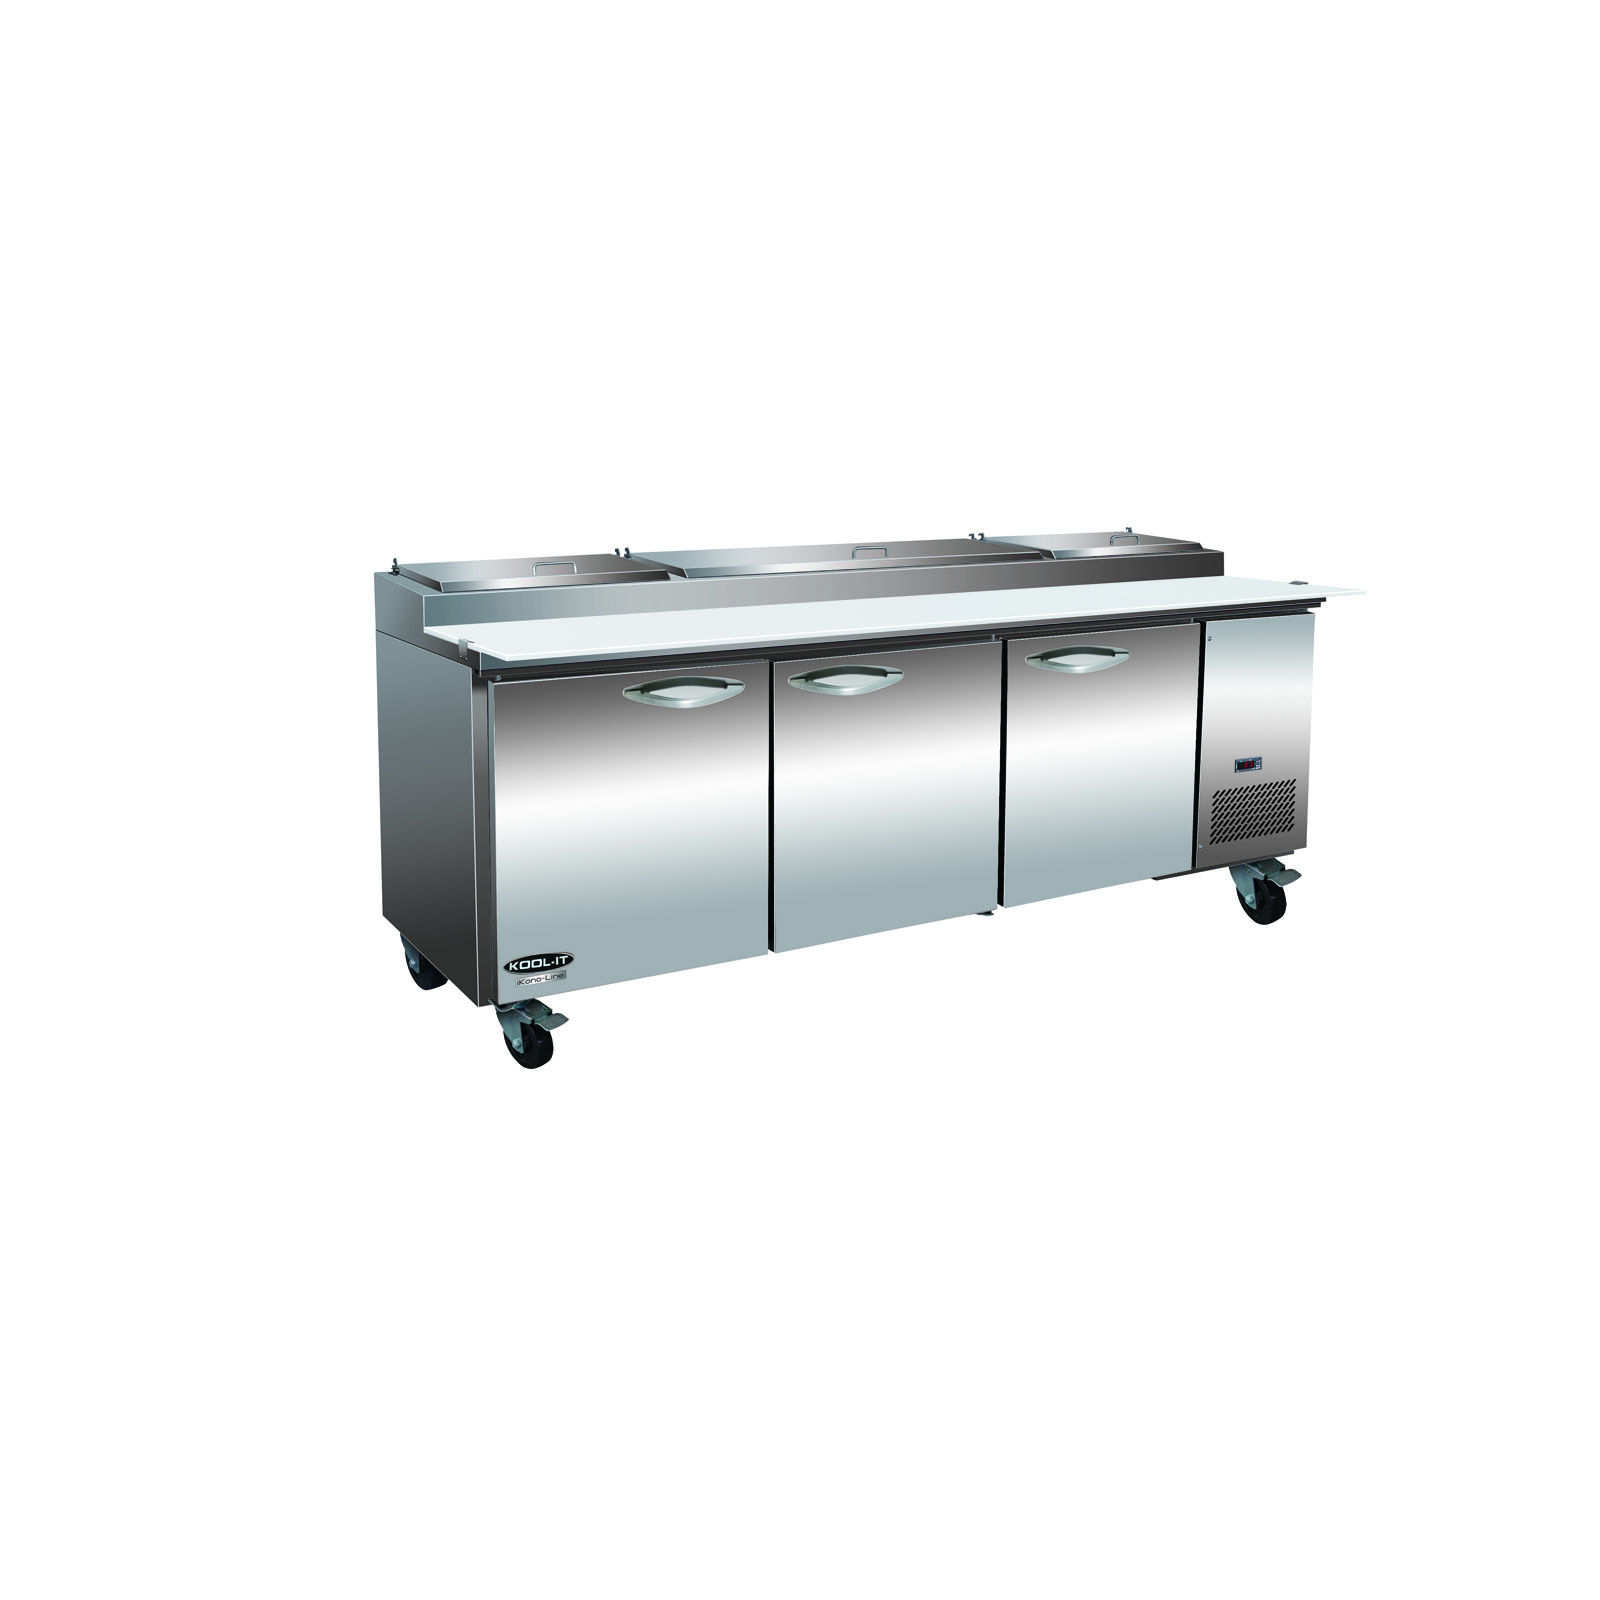 MVP IPP94 refrigerated counter, pizza prep table